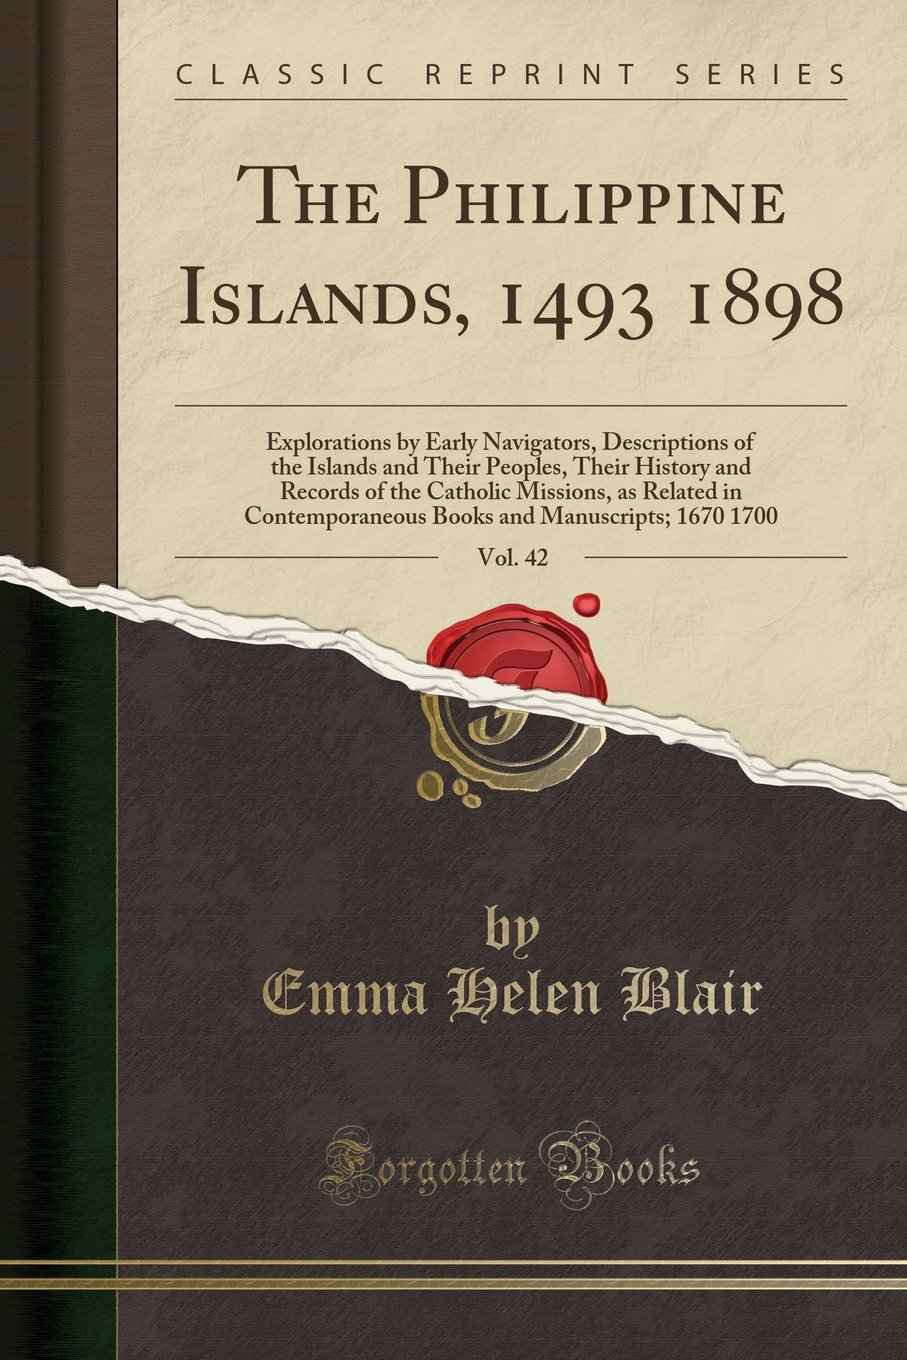 Download The Philippine Islands, 1493 1898, Vol. 42: Explorations by Early Navigators, Descriptions of the Islands and Their Peoples, Their History and Records ... Books and Manuscripts; 1670 1700 pdf epub